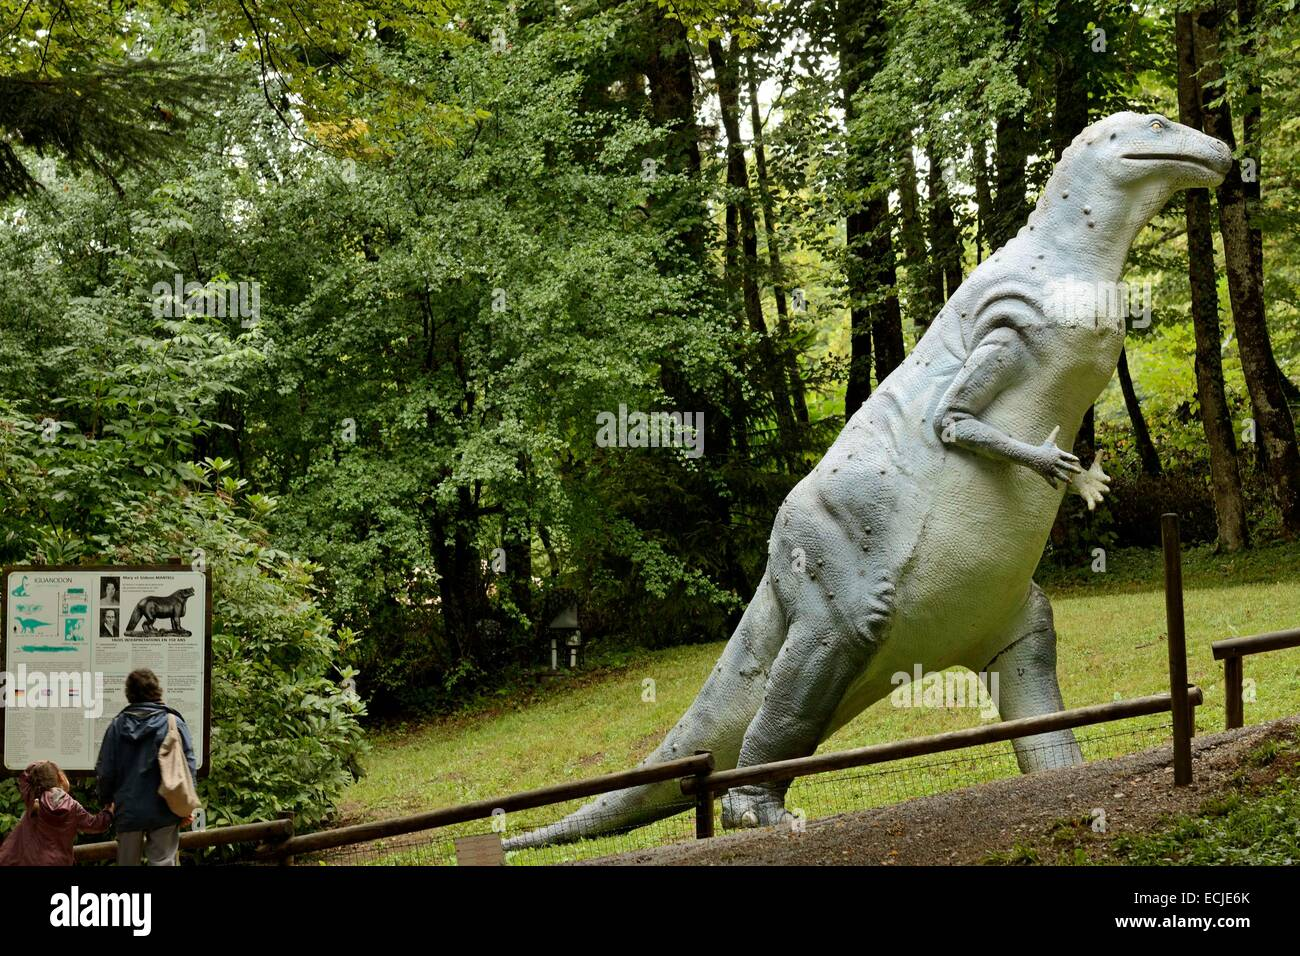 France, Doubs, Charbonnieres les Sapins, Dino Zoo prehistoric park, Iguanodon - Stock Image